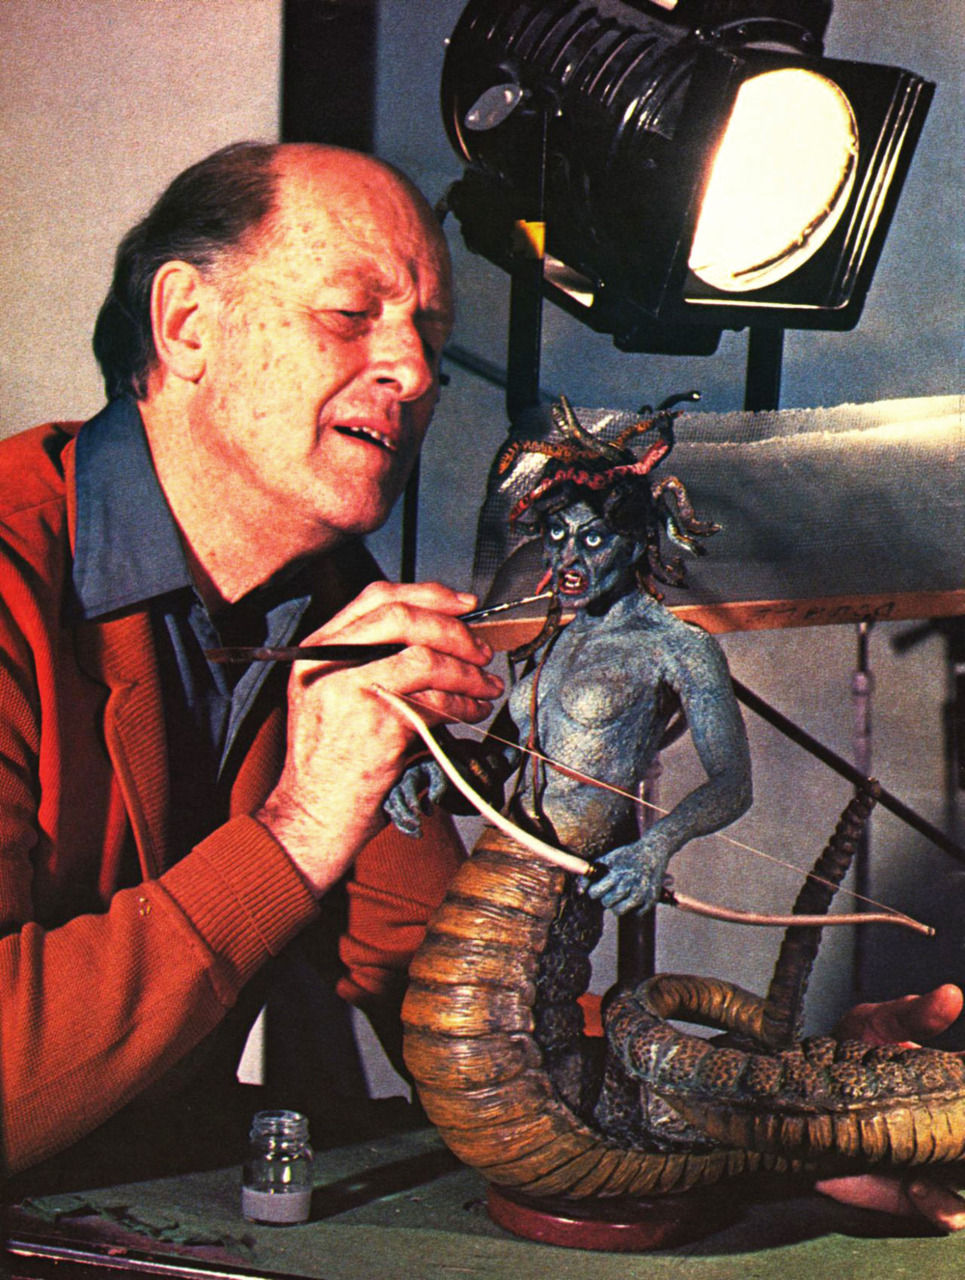 Ray Harryhausen Collection BD Live 20 Million Miles to Earth Earth Vs Flying Saucers It Came from Beneath the Sea 7th Voyage of Sinbad Movie HD free download 720p